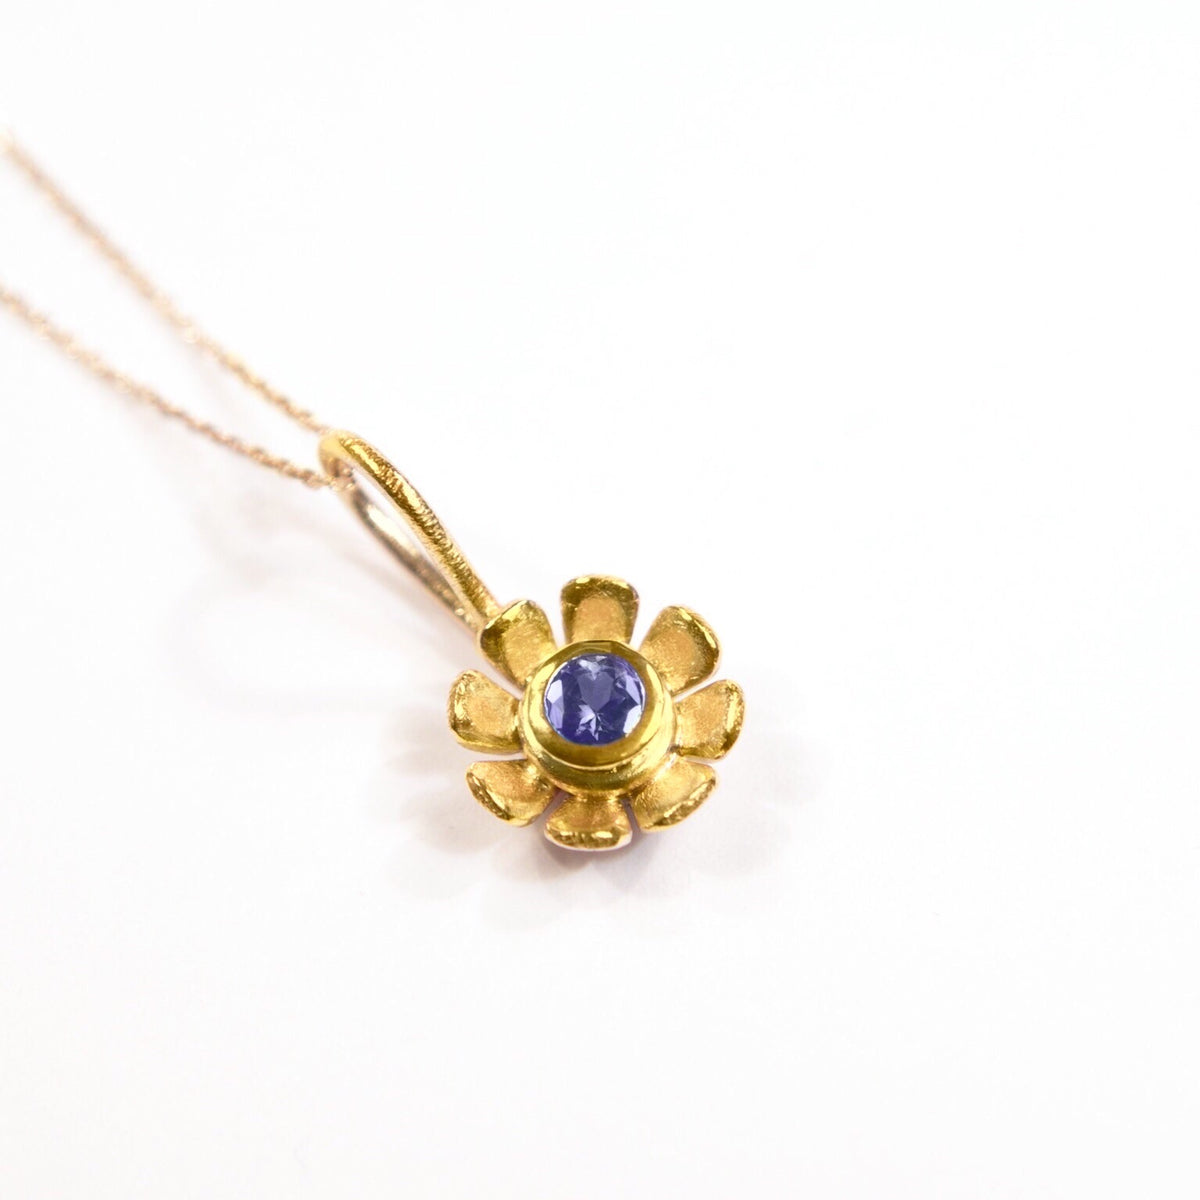 Daisy Flower Pendant: 18ct Yellow Gold, Small Daisy, Blue Sapphire